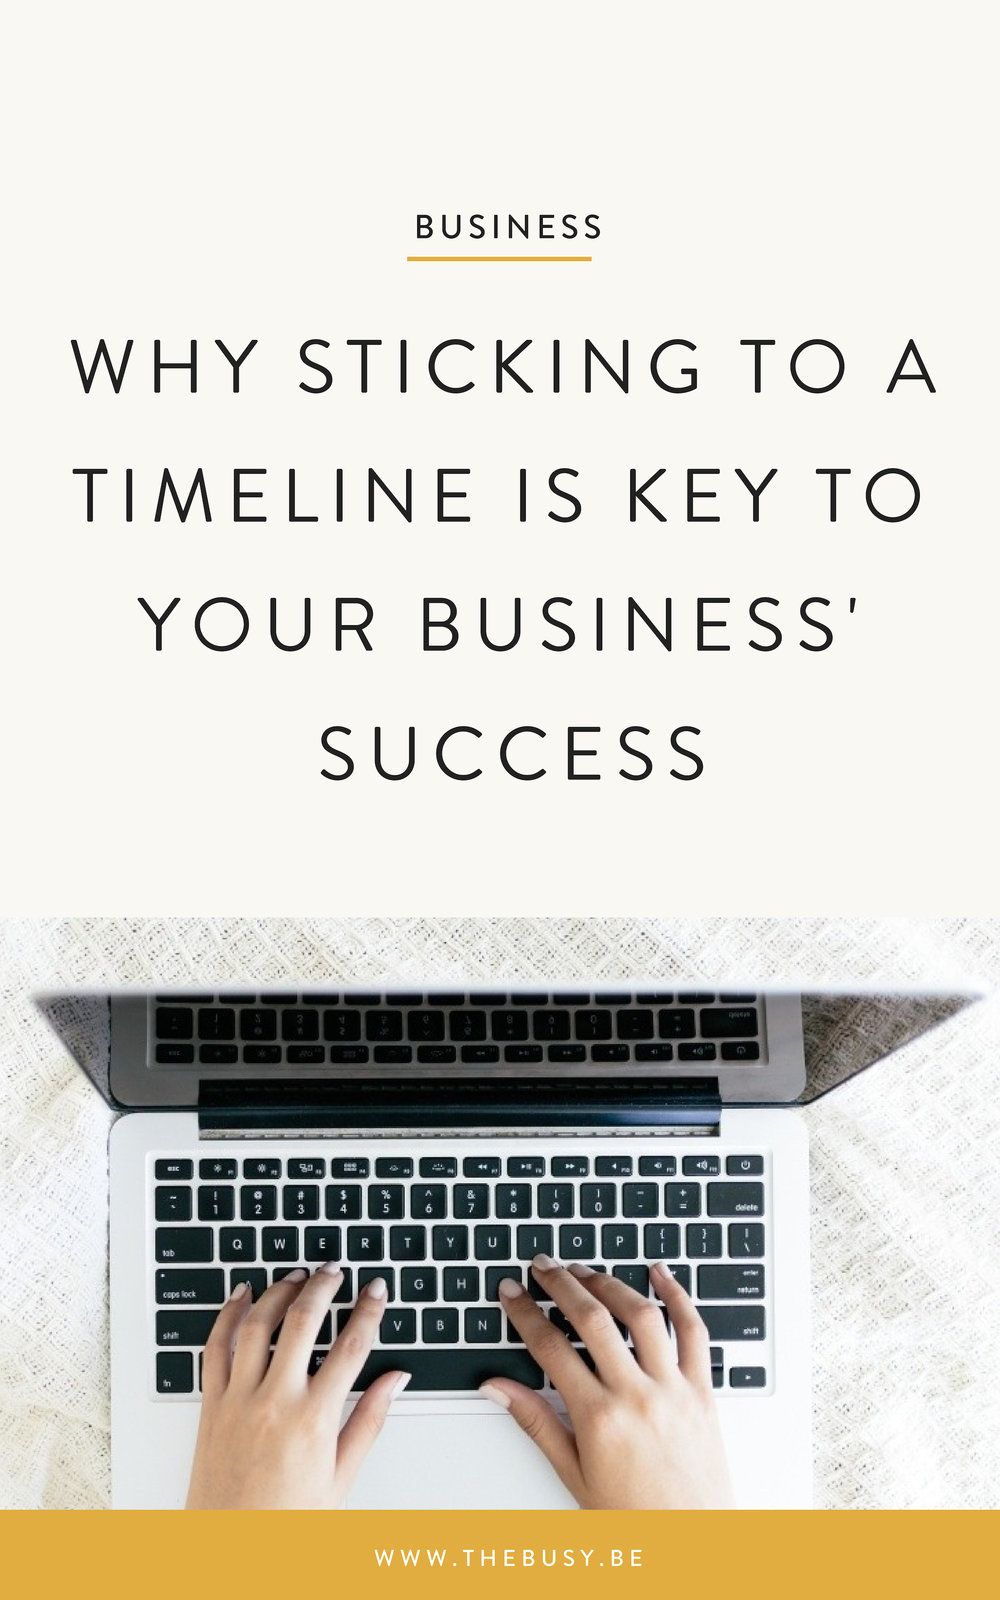 The Busy Bee Squarespace Web Design Why Sticking To a Timeline Is Key To Your Business' Success